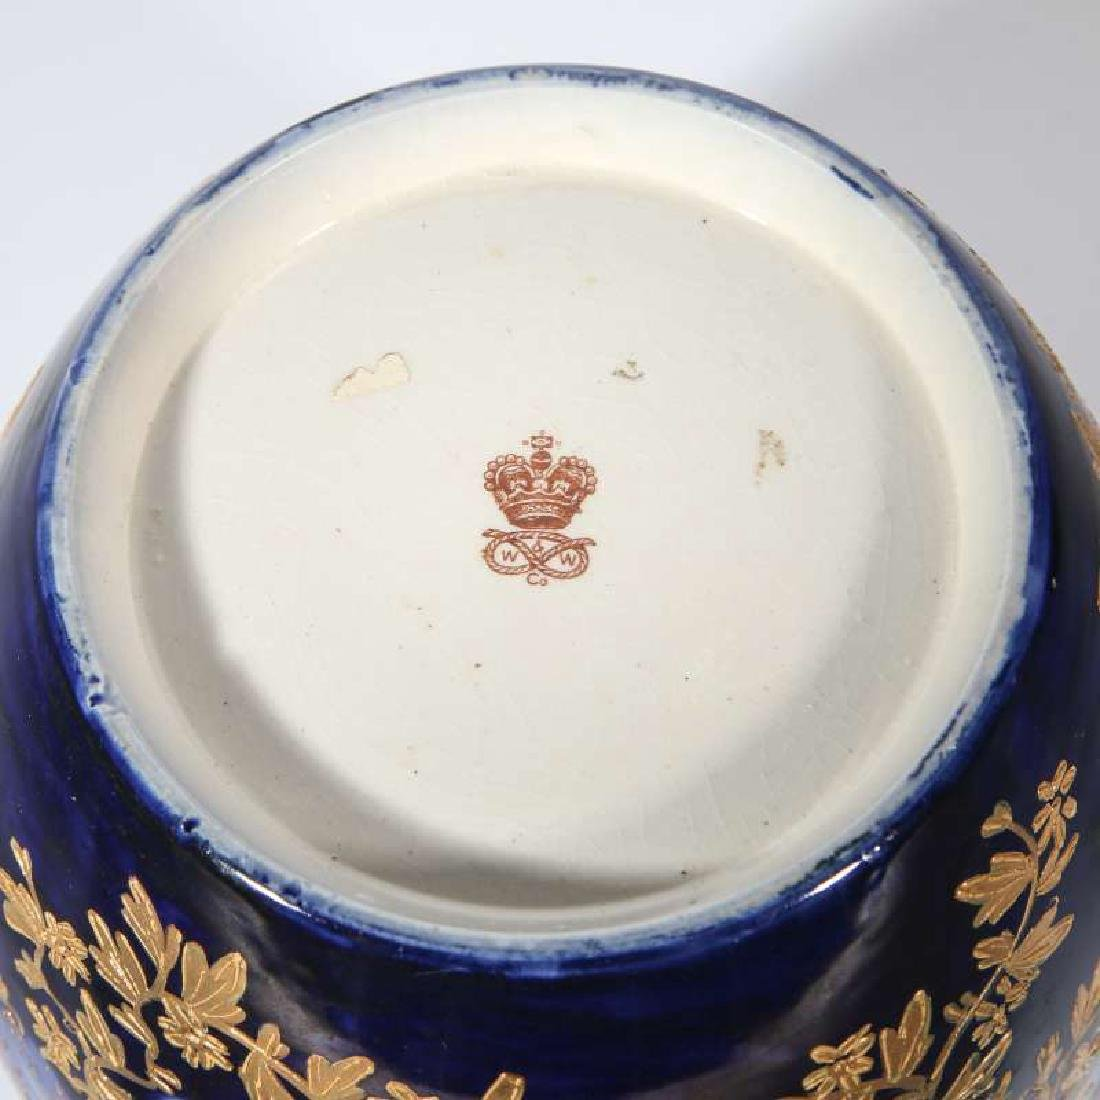 A GOOD FLOW BLUE BISCUIT JAR CIRCA 1890 - 6